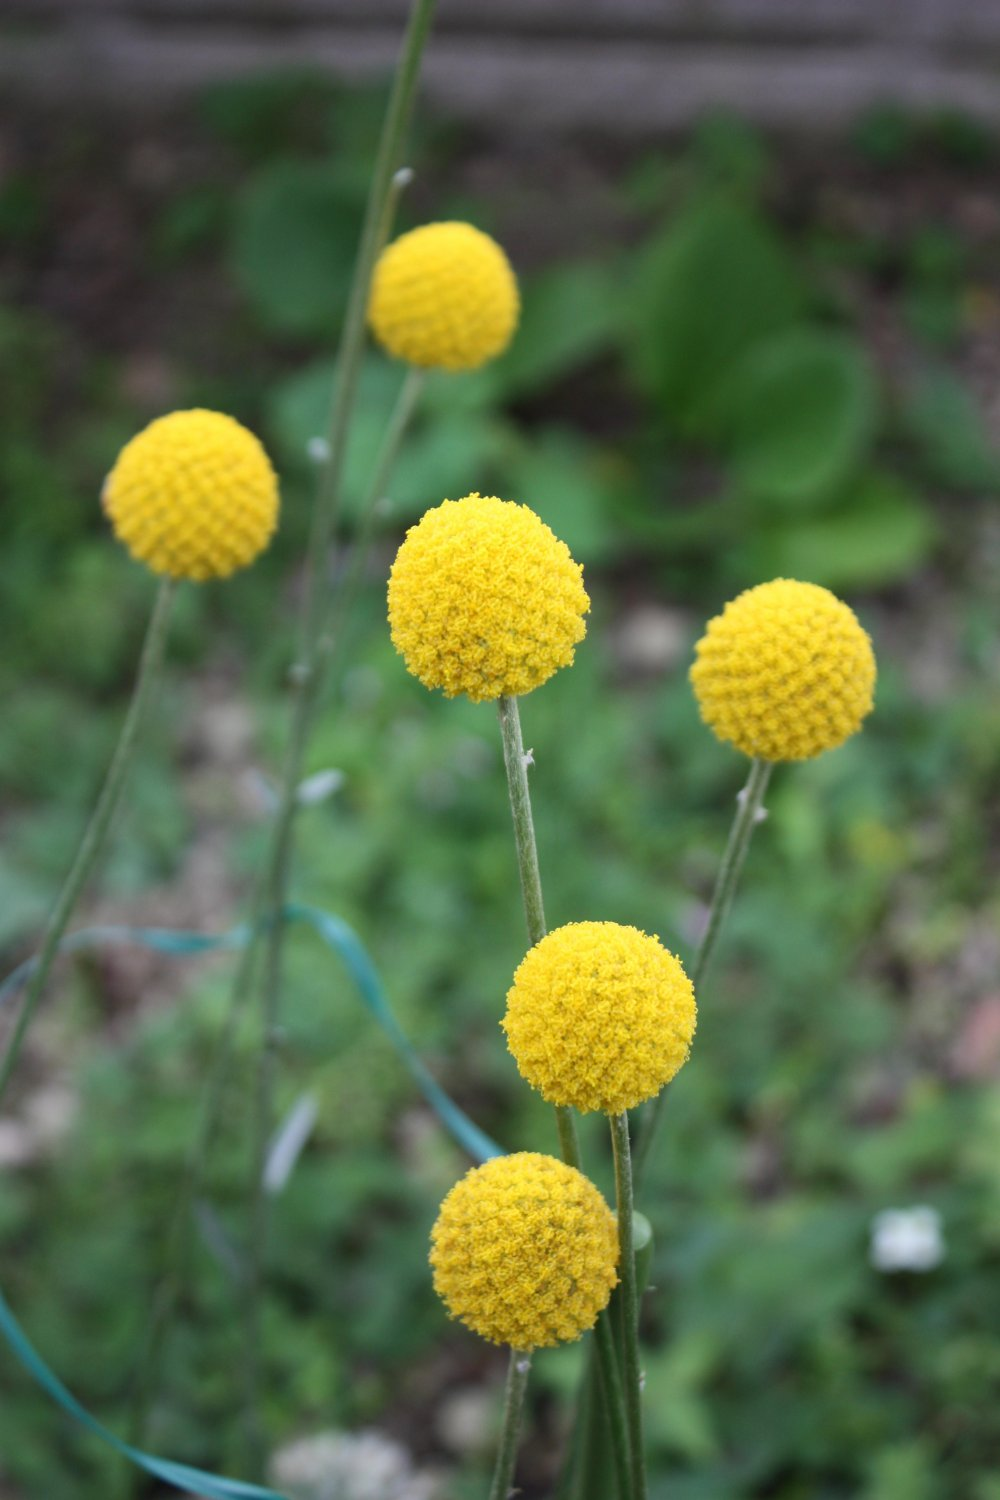 Green Family Stores >> Golden Drumstick Billy Balls Craspedia Globosa - 25 Seeds